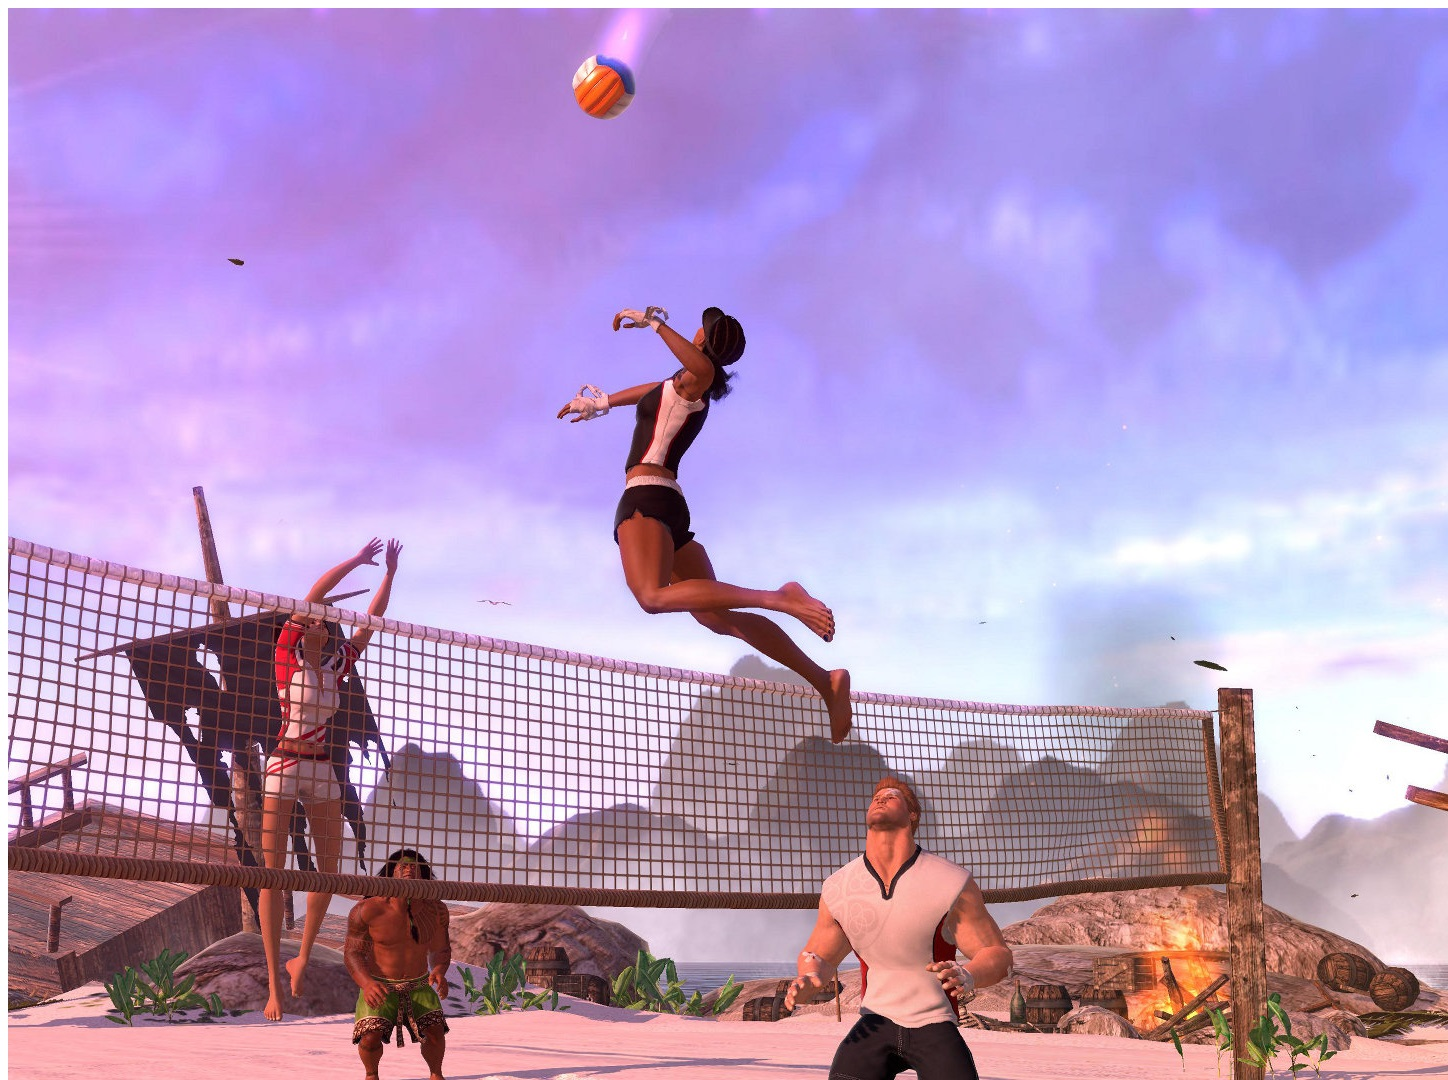 bach-volley ball